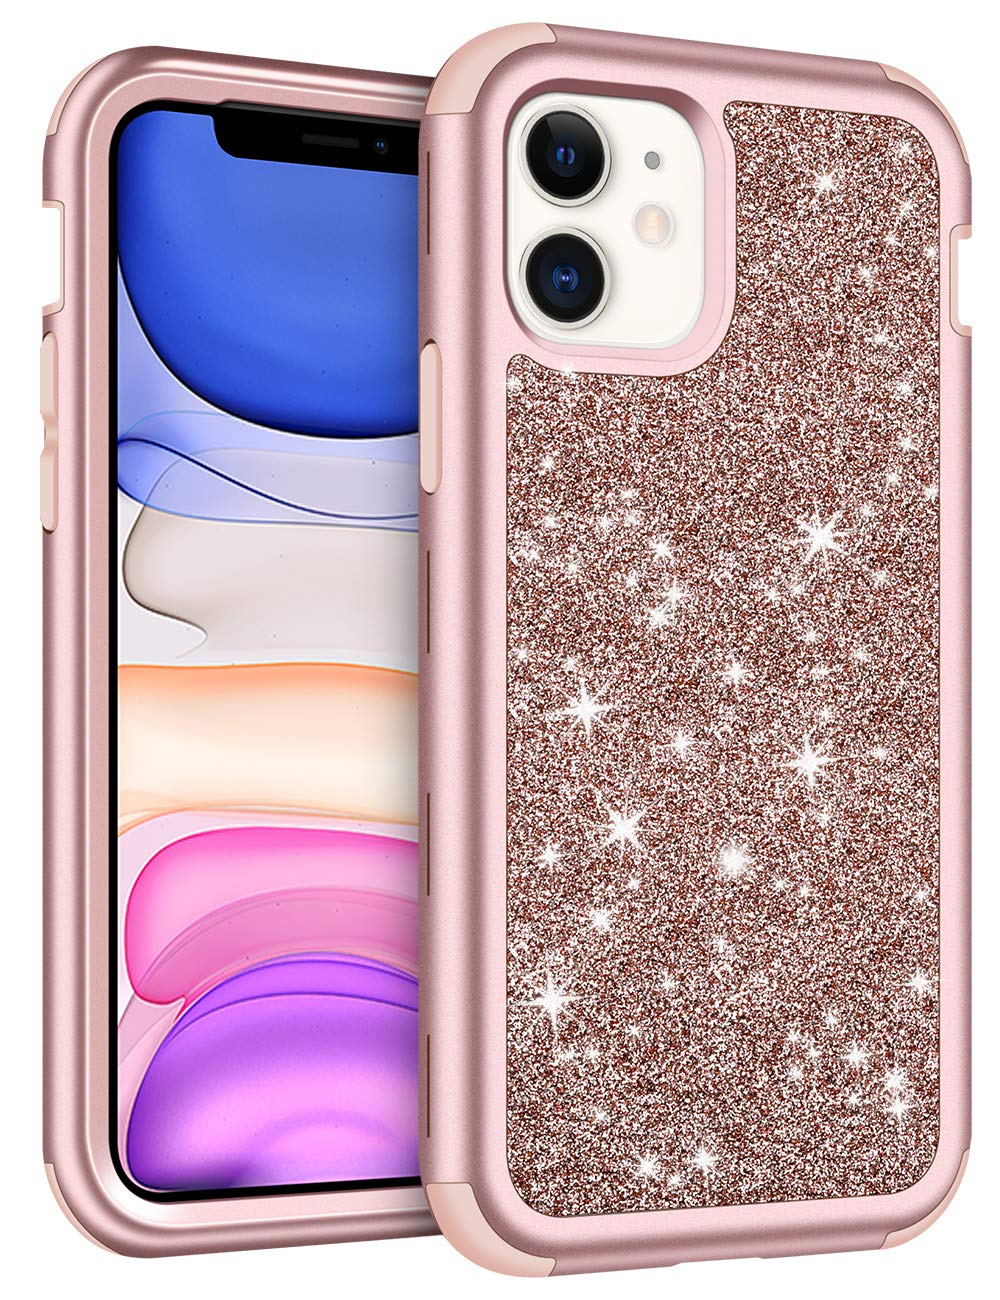 Vofolen Cover for iPhone 11 Case with Front Bumper Bling Glitter Shiny Full-Body Protection Hybrid Protective Hard Shell Soft Silicone TPU Rubber Bumper Armor Case for iPhone 11 6.1 inch Rose Gold